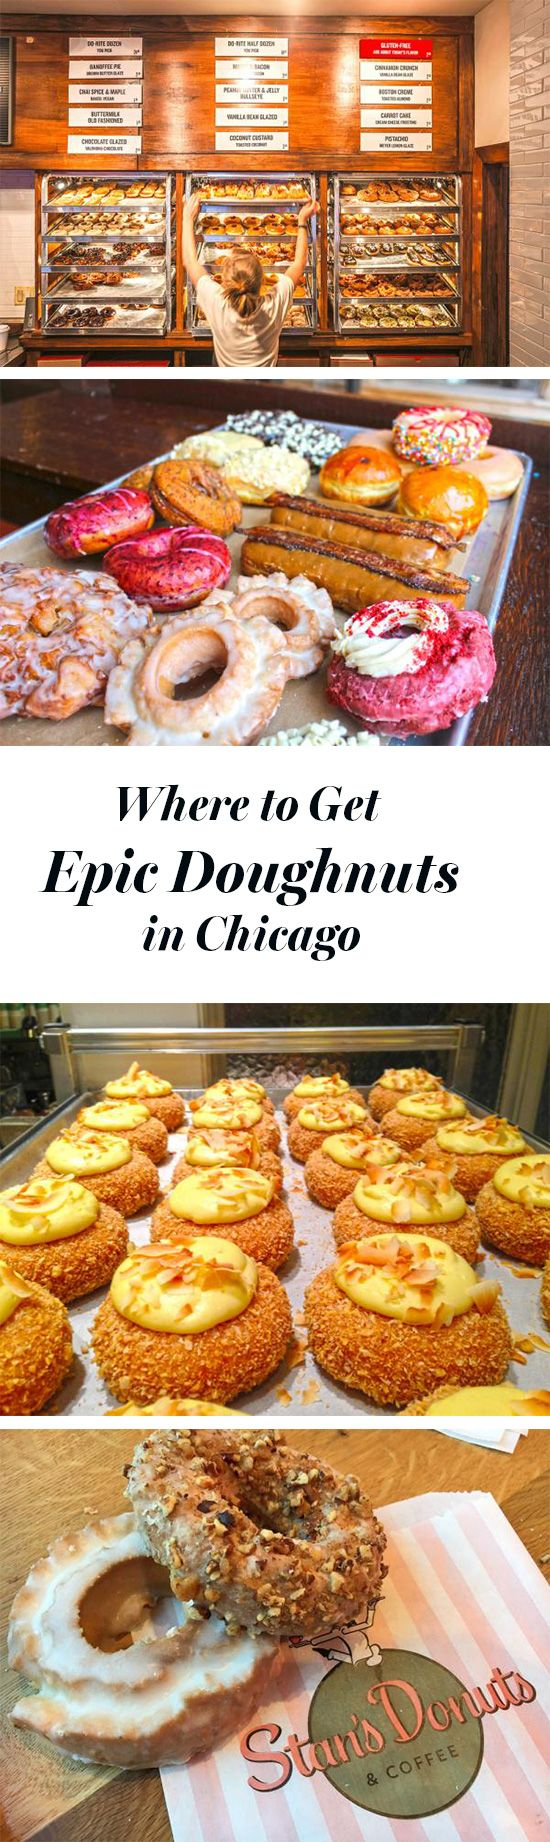 Gourmet doughnut shops have popped up all over Chicago lately, so you'd think the appeal would be becoming a bit … uh … stale. Wrong. After tasting the moist cakes, sweet glaze and creative flavors (glazed pineapple and bacon), Chicagoans can't get enough. Here are seven of our favorite spots.